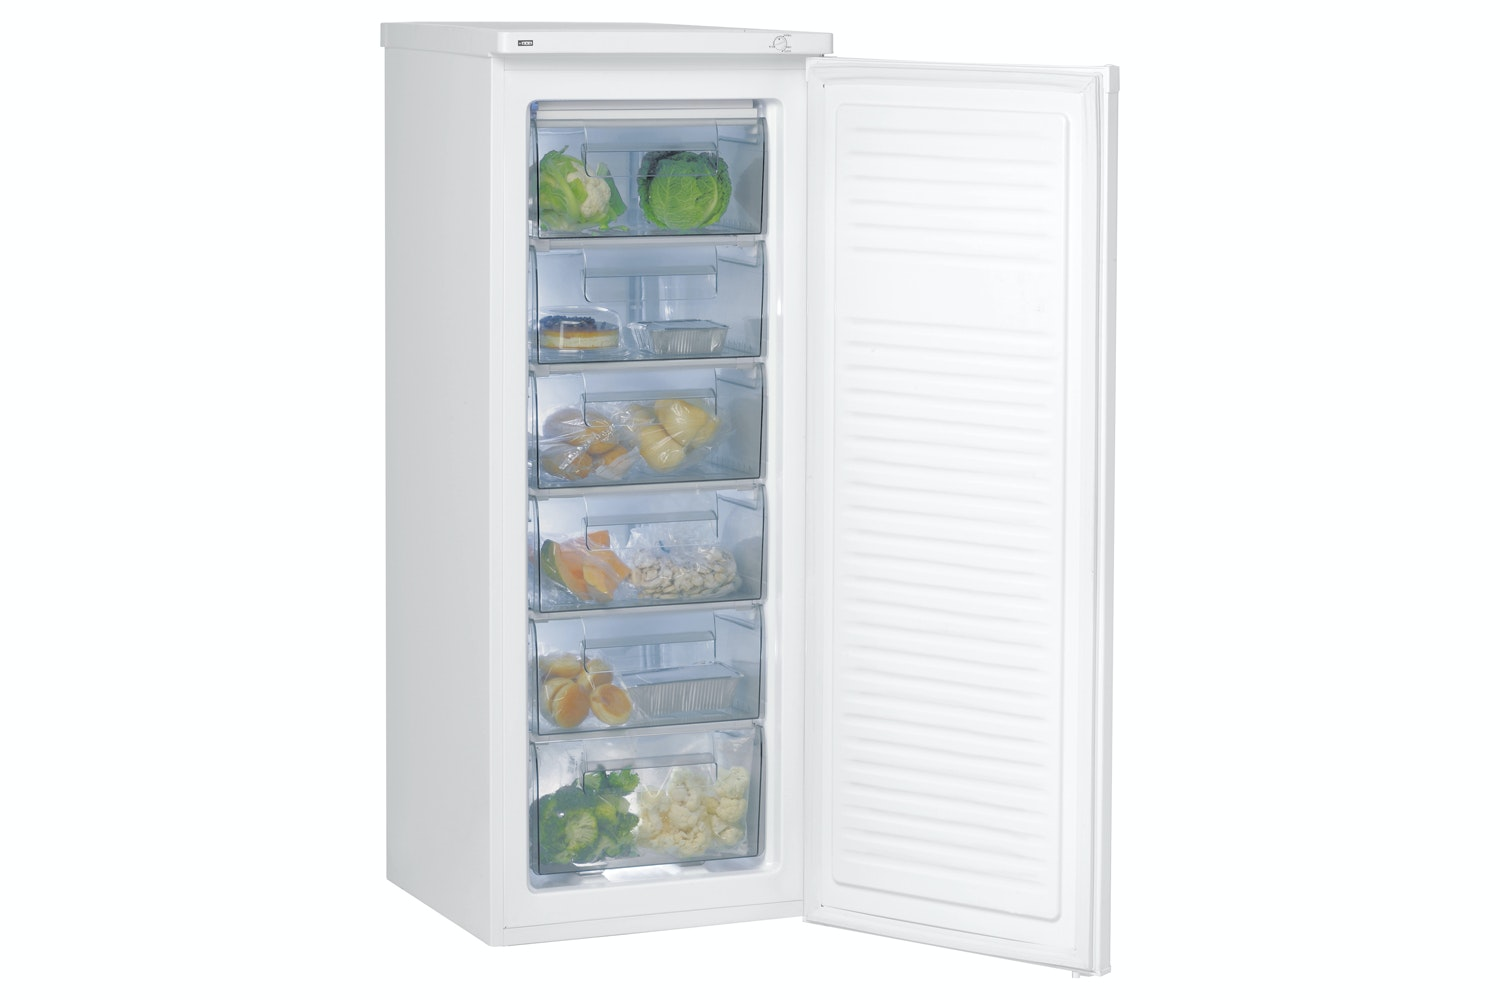 Whirlpool 55cm Upright Freezer | WV1510WA+